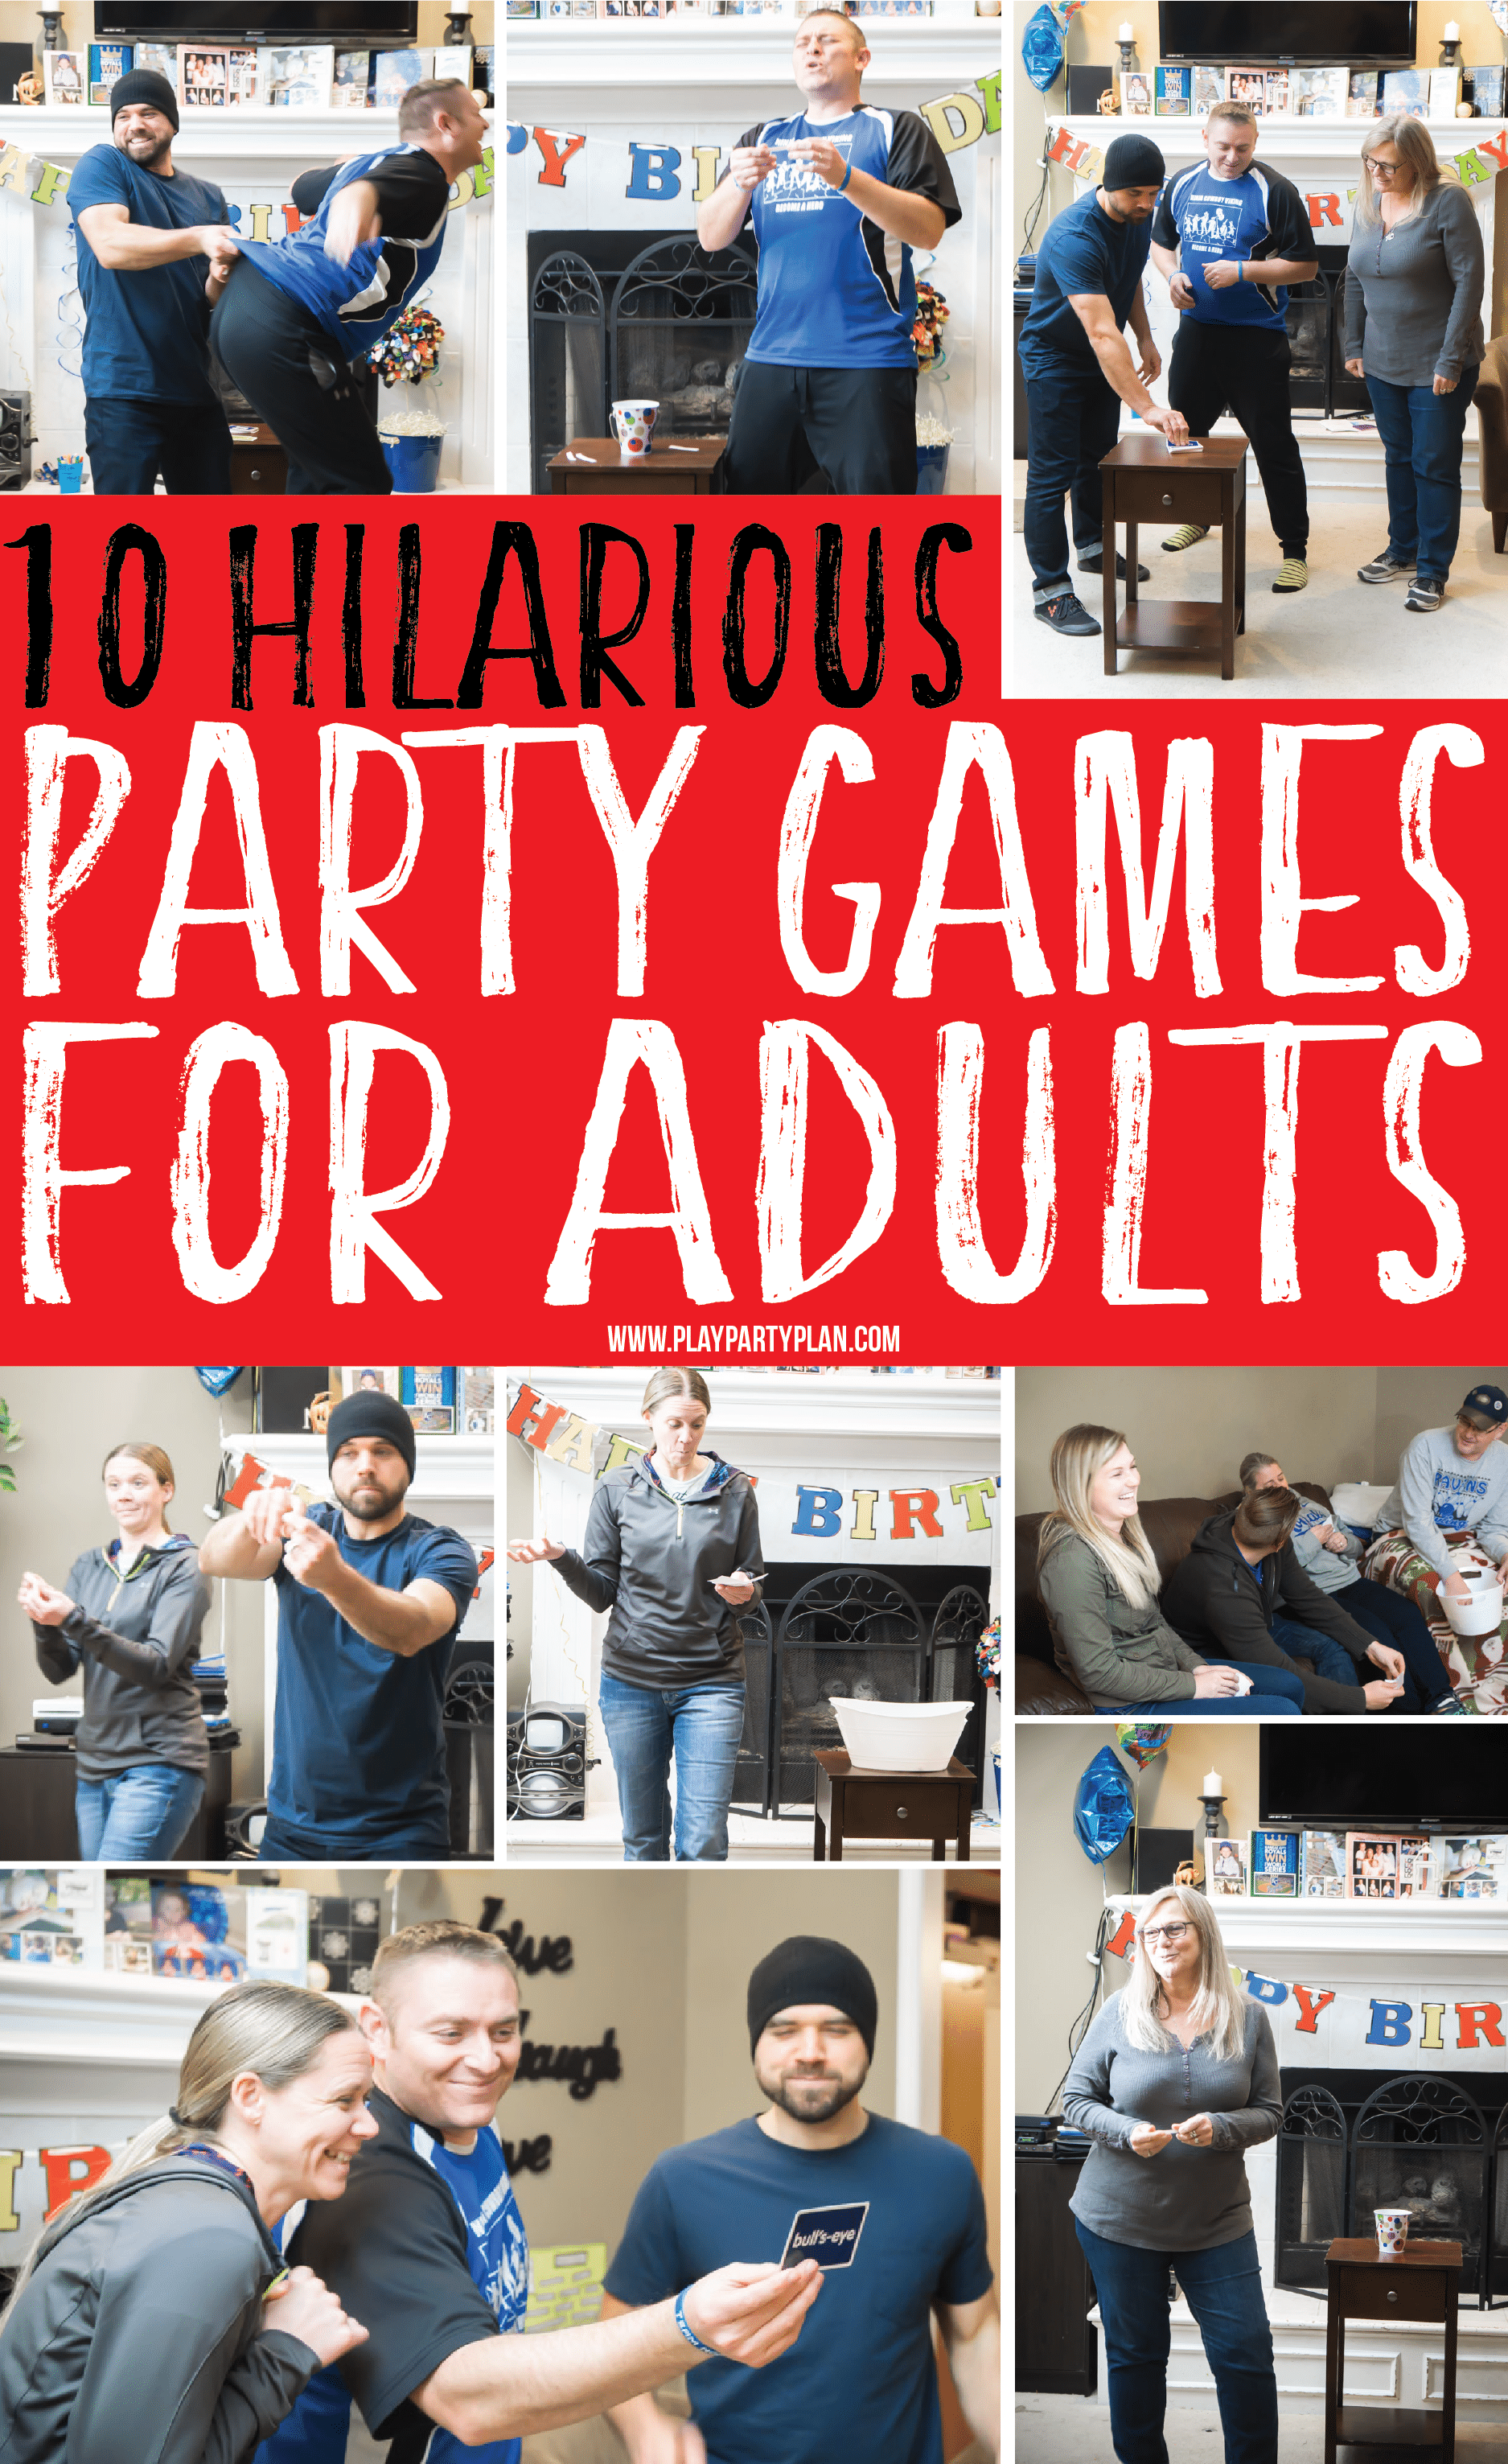 Party games for adults funny